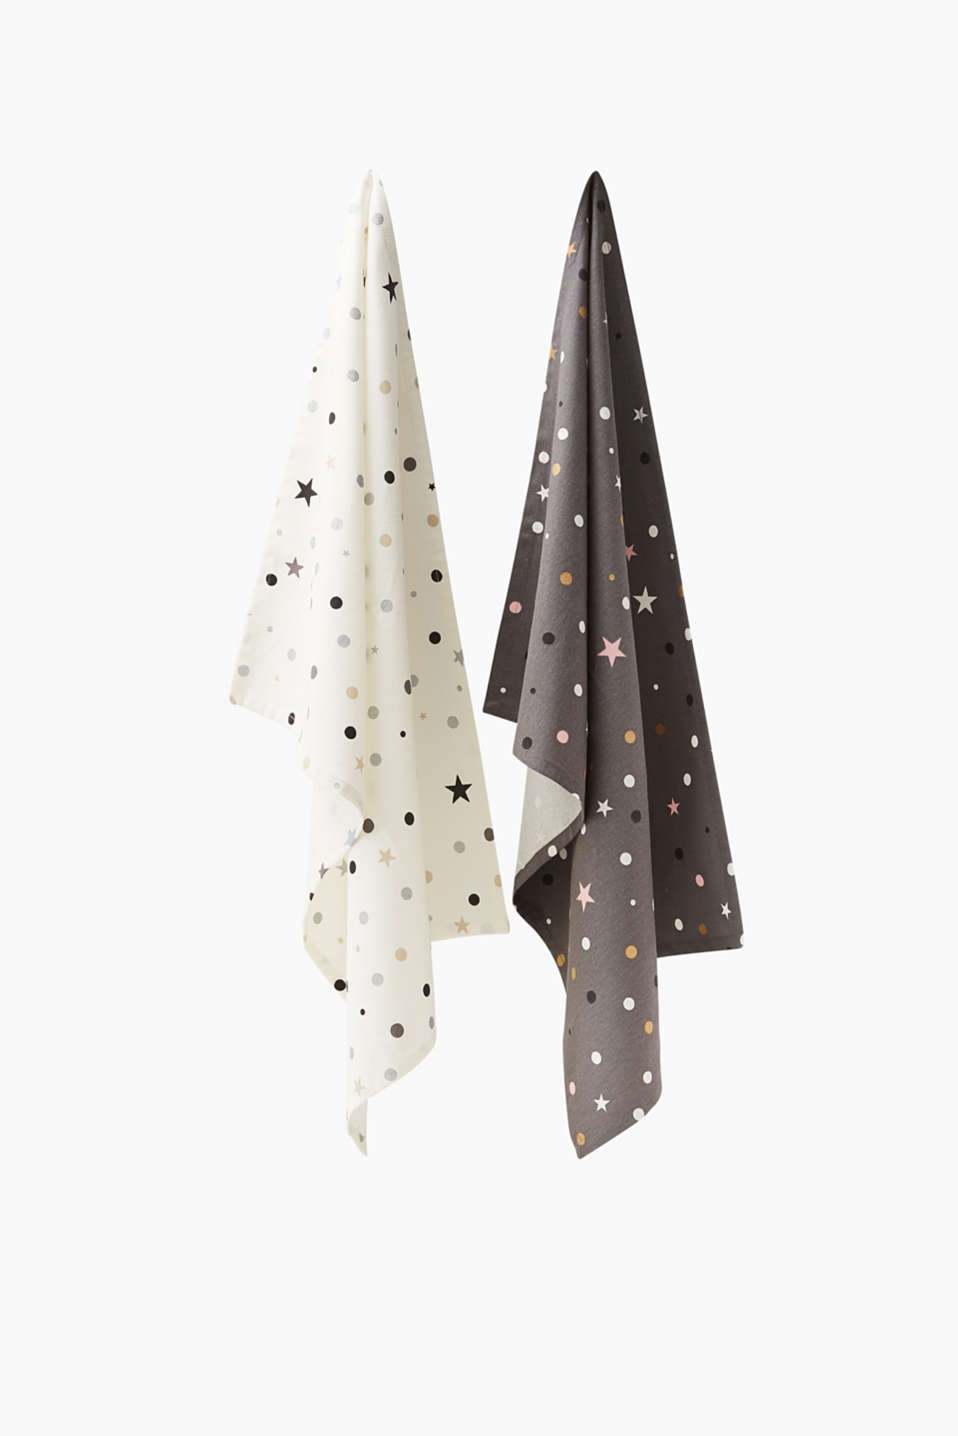 Polka-dots and stars, some finished in a metallic look, mean this two pack of tea towels are sure to turn heads.